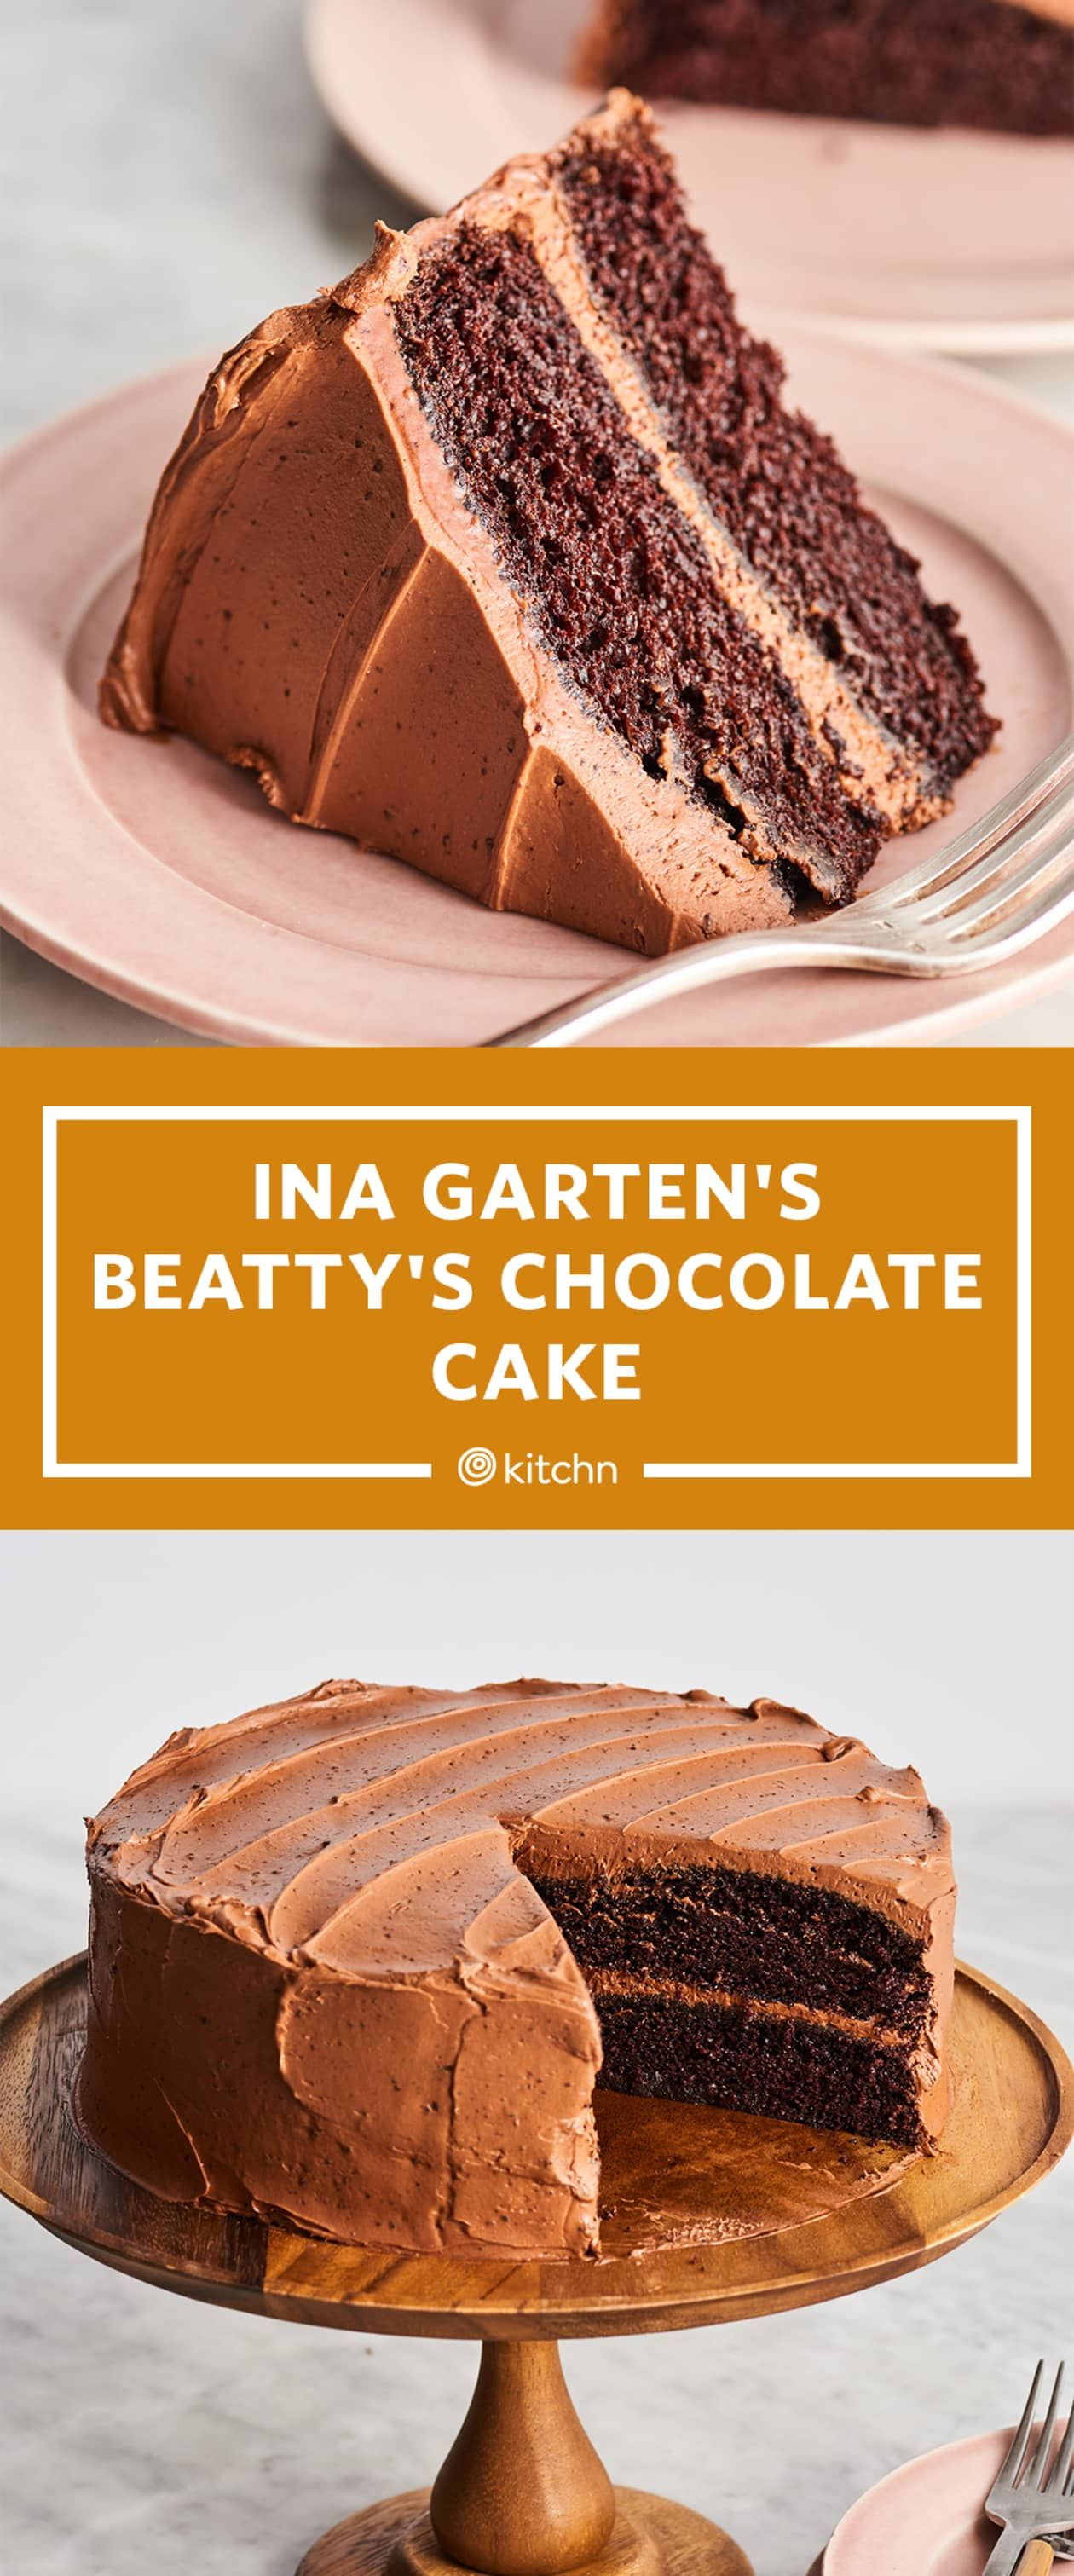 Ina Garten Has a Clever Trick for Making the Best Chocolate Cake Ever